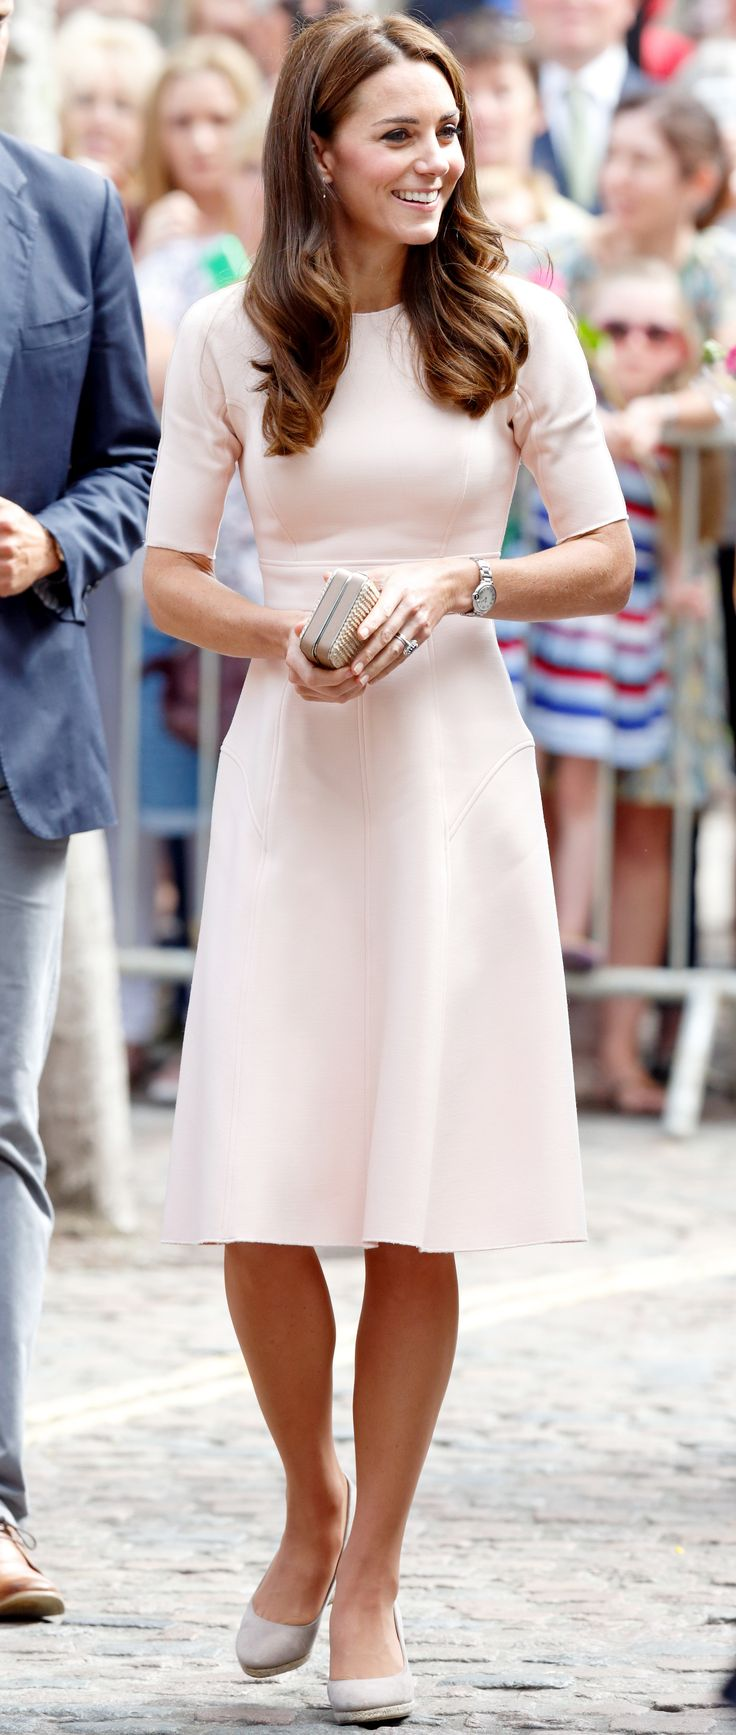 Kate Middleton was pretty in pink for a royal visit to Cornwall, where she and Prince William took the day for a series of engagements at local youth organizations in the coastal county. Middleton looked radiant in a pale pink fit-and-flare dress by Lela Rose and a summery pair of Monsoon espadrille wedges, wearing her hair in loose, effortless waves and kept her makeup on the natural side.